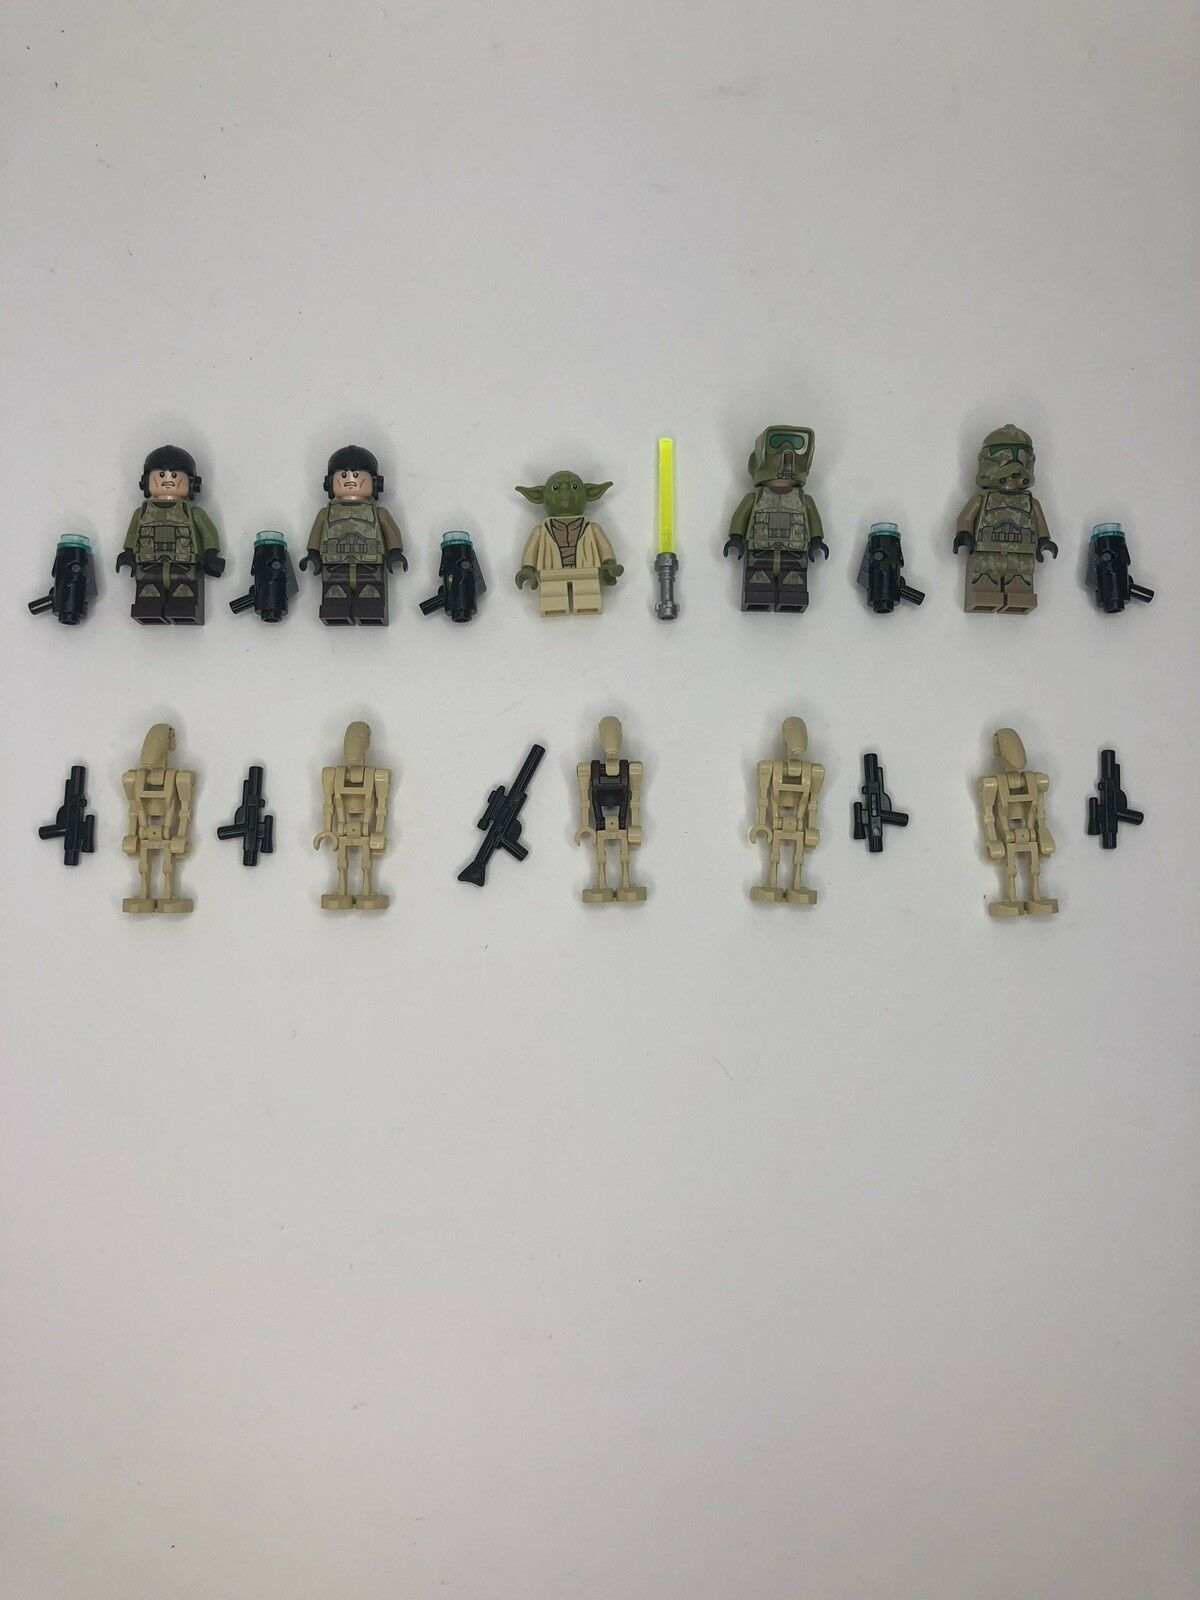 LEGO Star Wars Minifigures Yoda Kashyyyk Clone Troopers Droids Lot Weapons A5